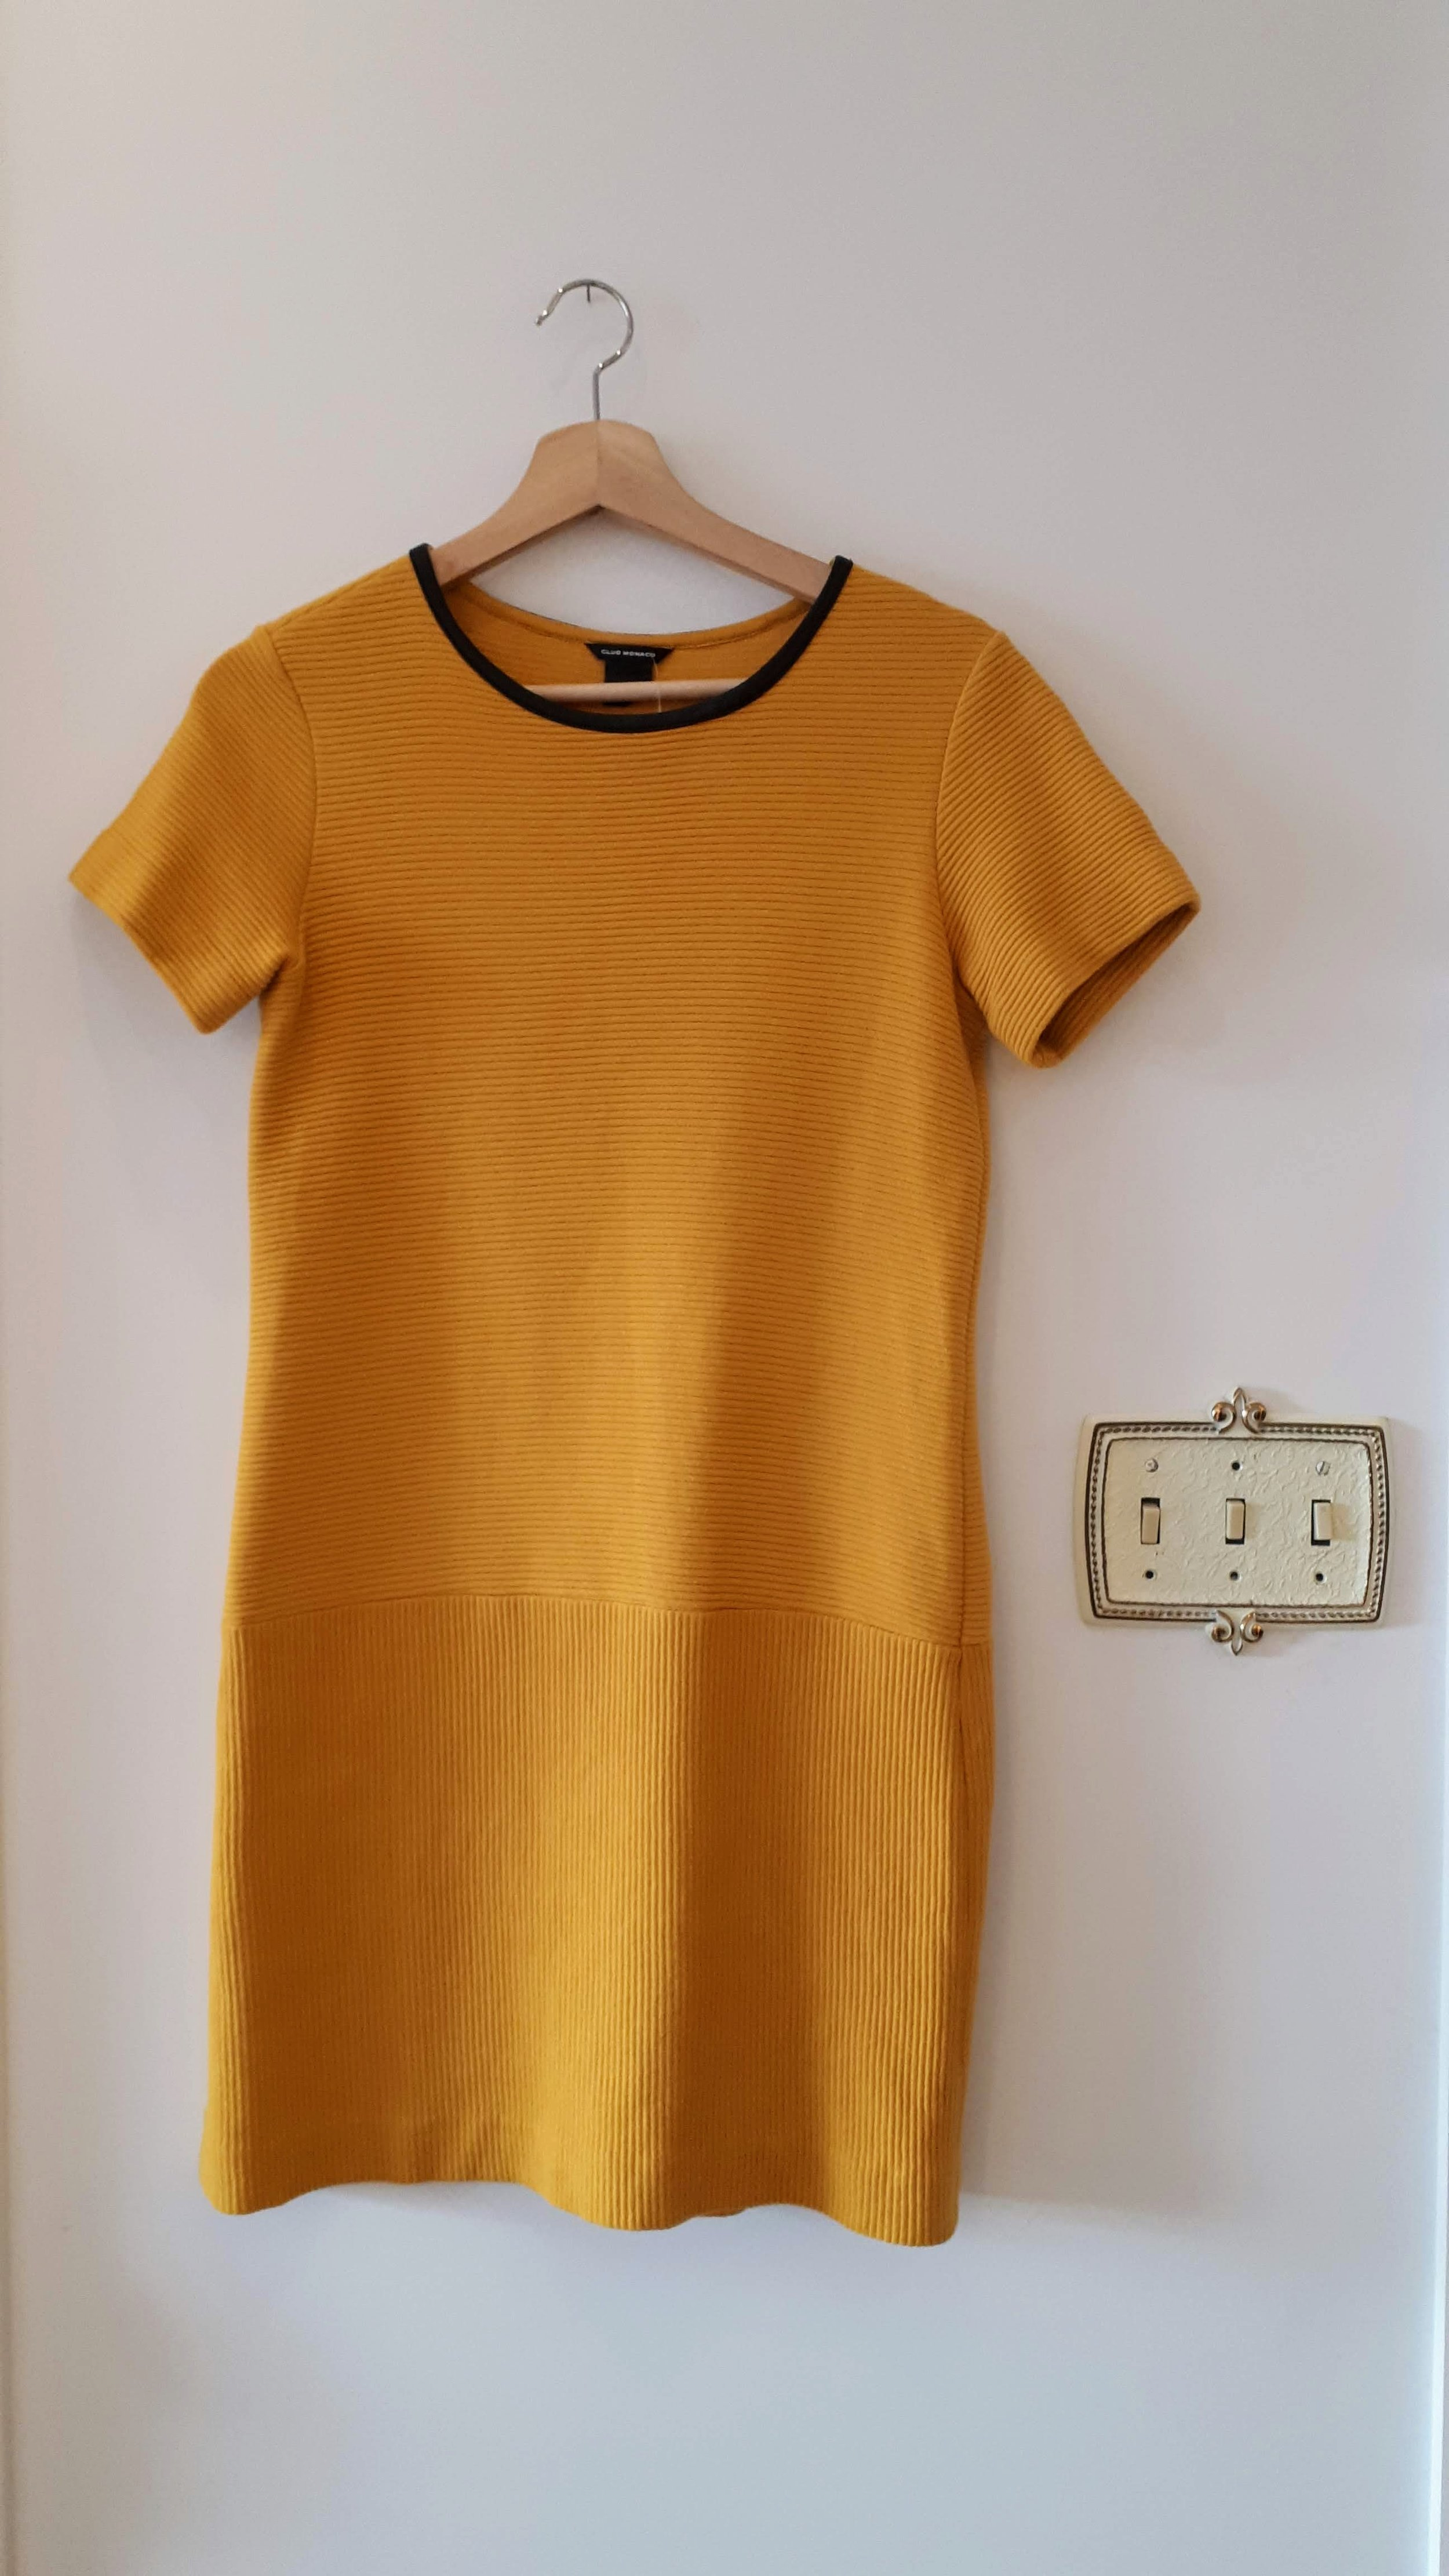 Club Monaco dress; Size 0, $26